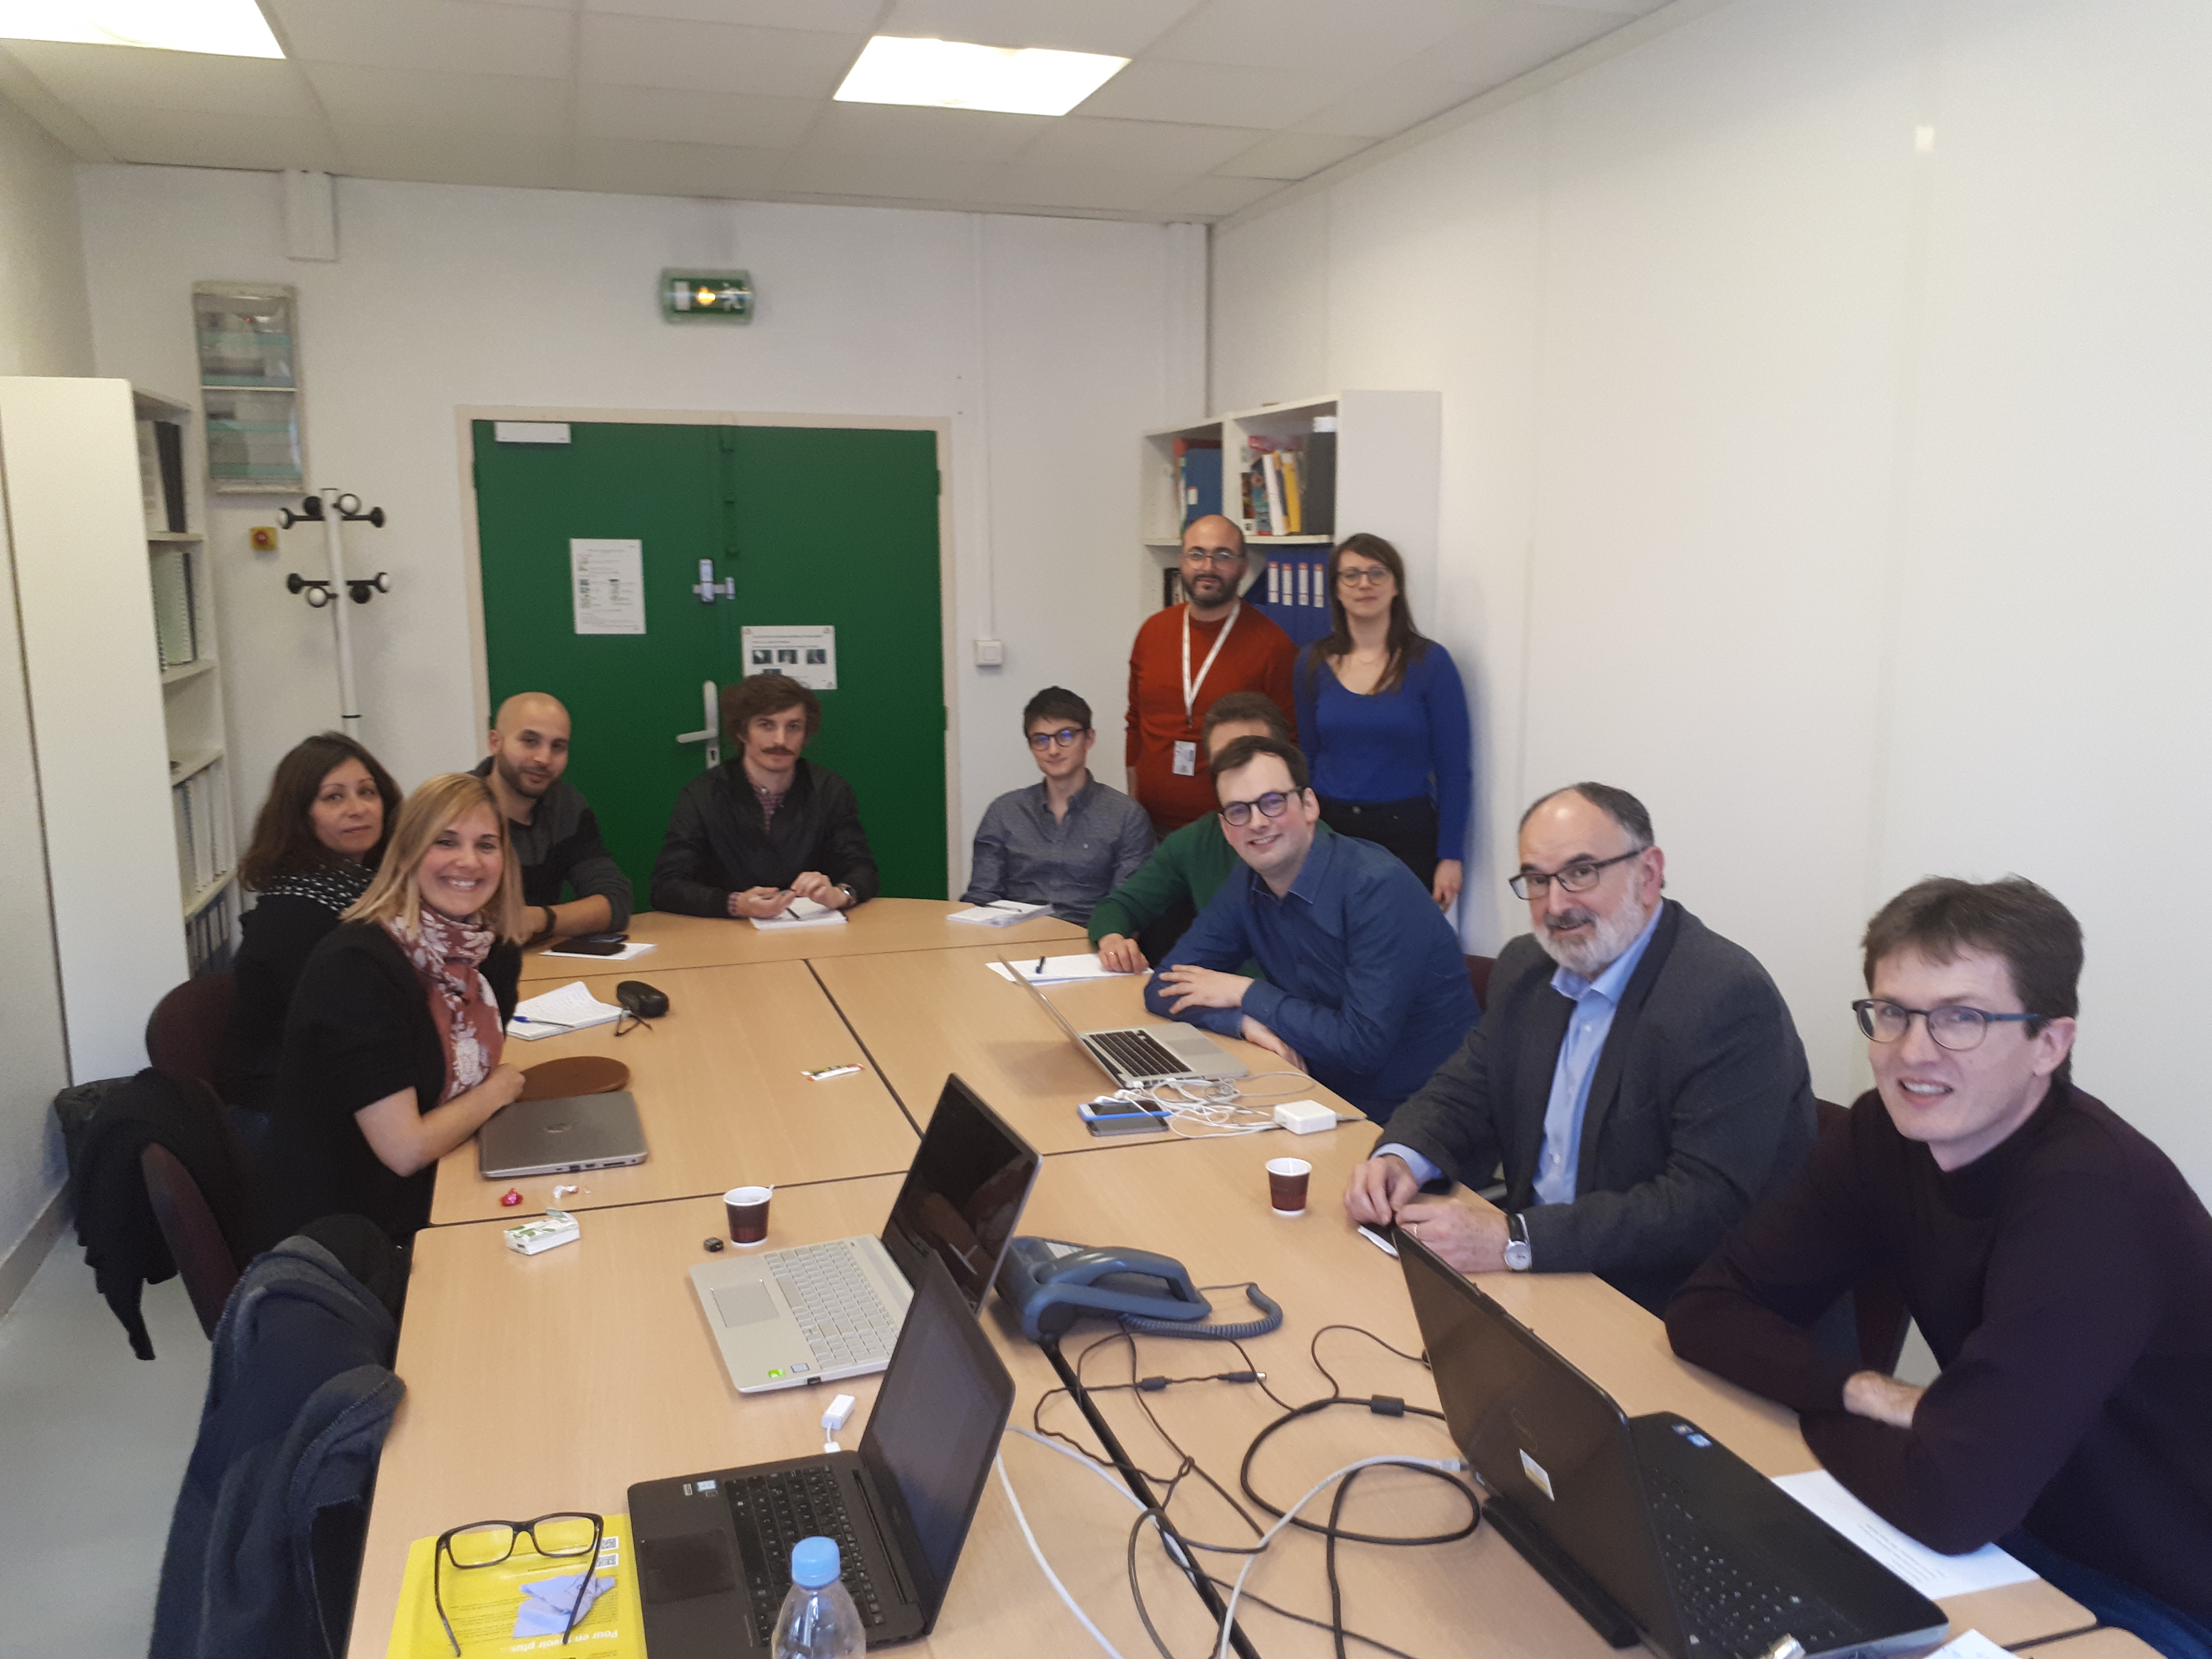 The Open Food Facts team meeting the EREN research team